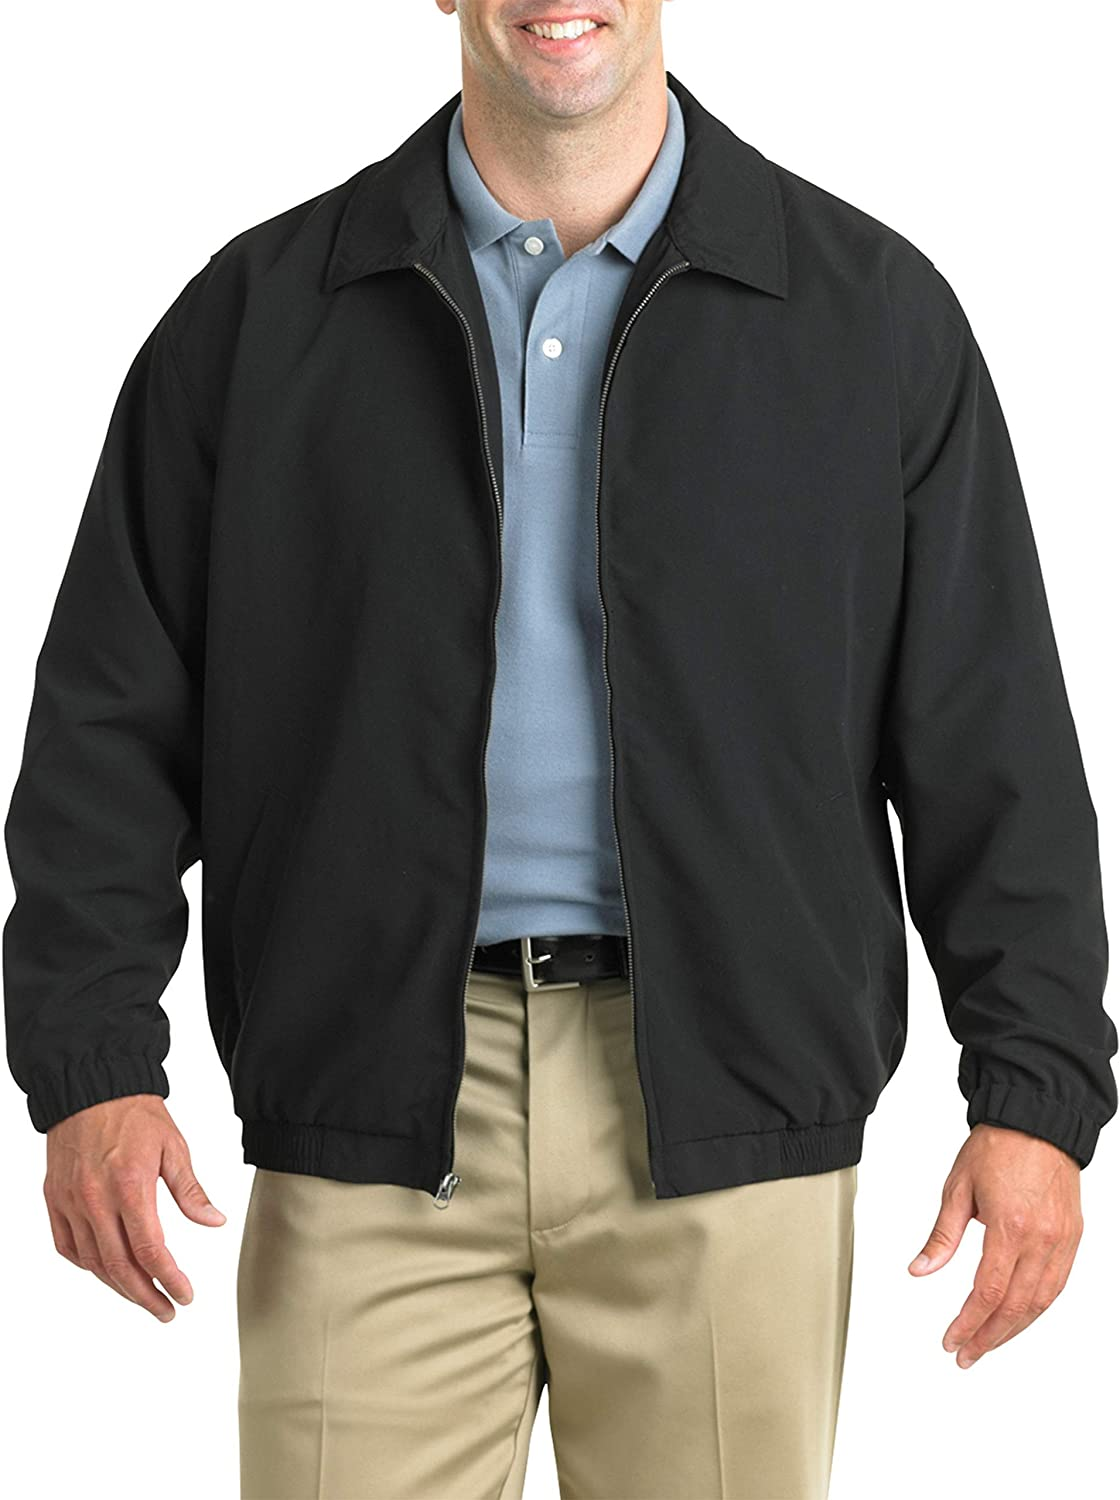 Harbor Bay by DXL Big and Tall Golf Jacket: Clothing